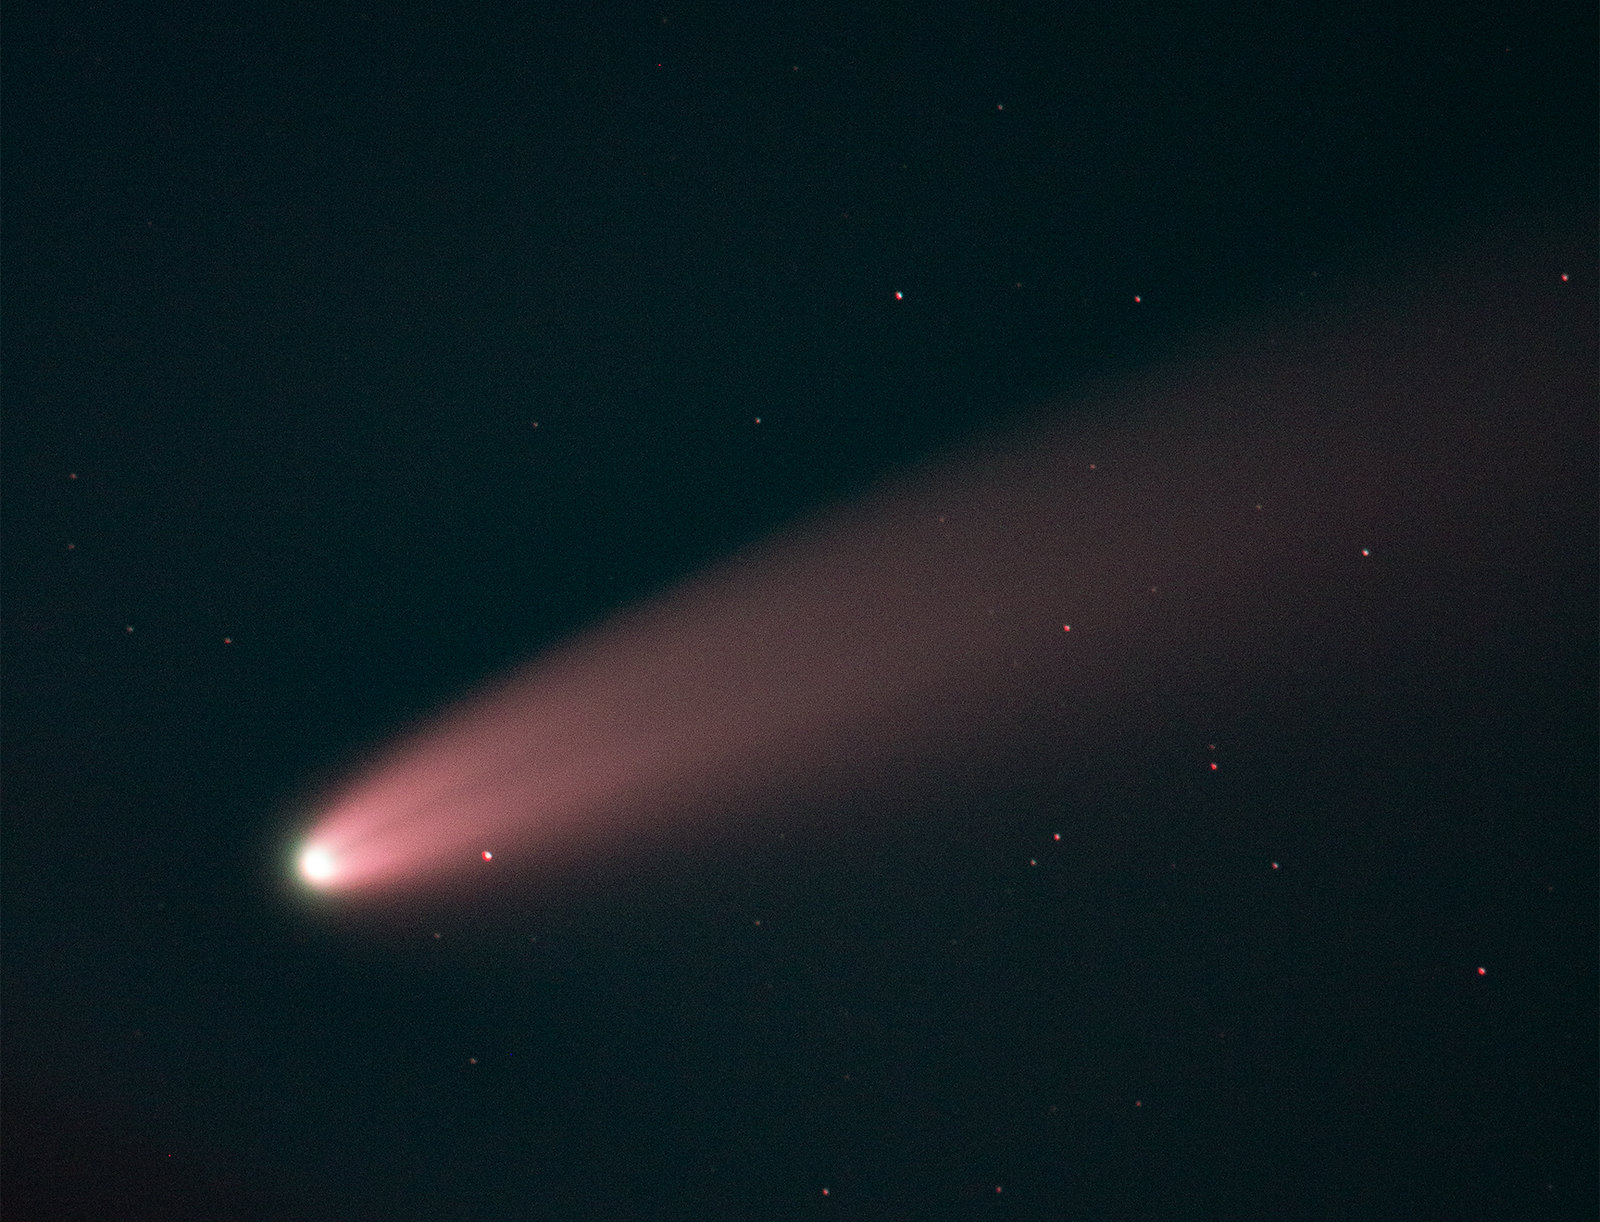 Comet NEOWISE by Ian Smith